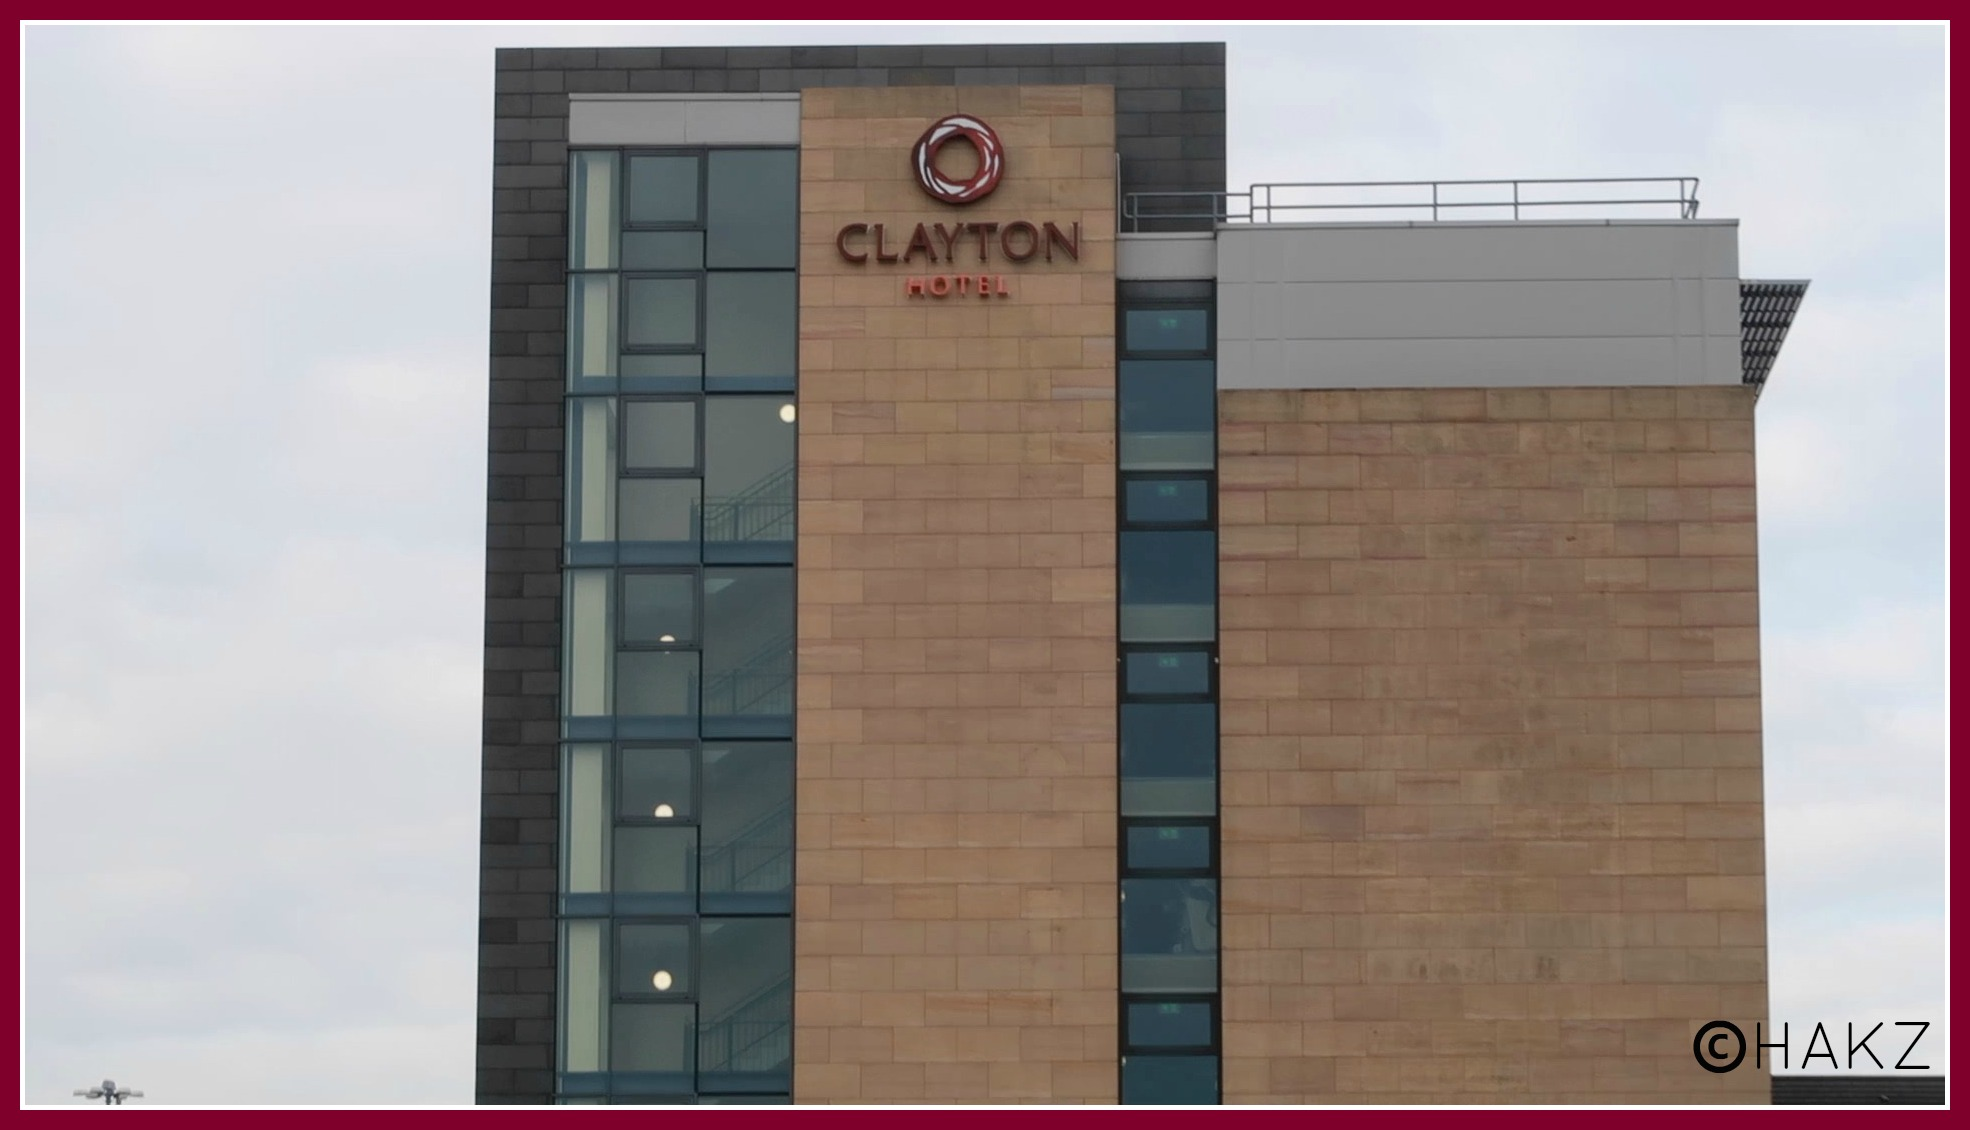 Manchester Airport hotel and parking: Clayton Hotel Manchester Airport tower